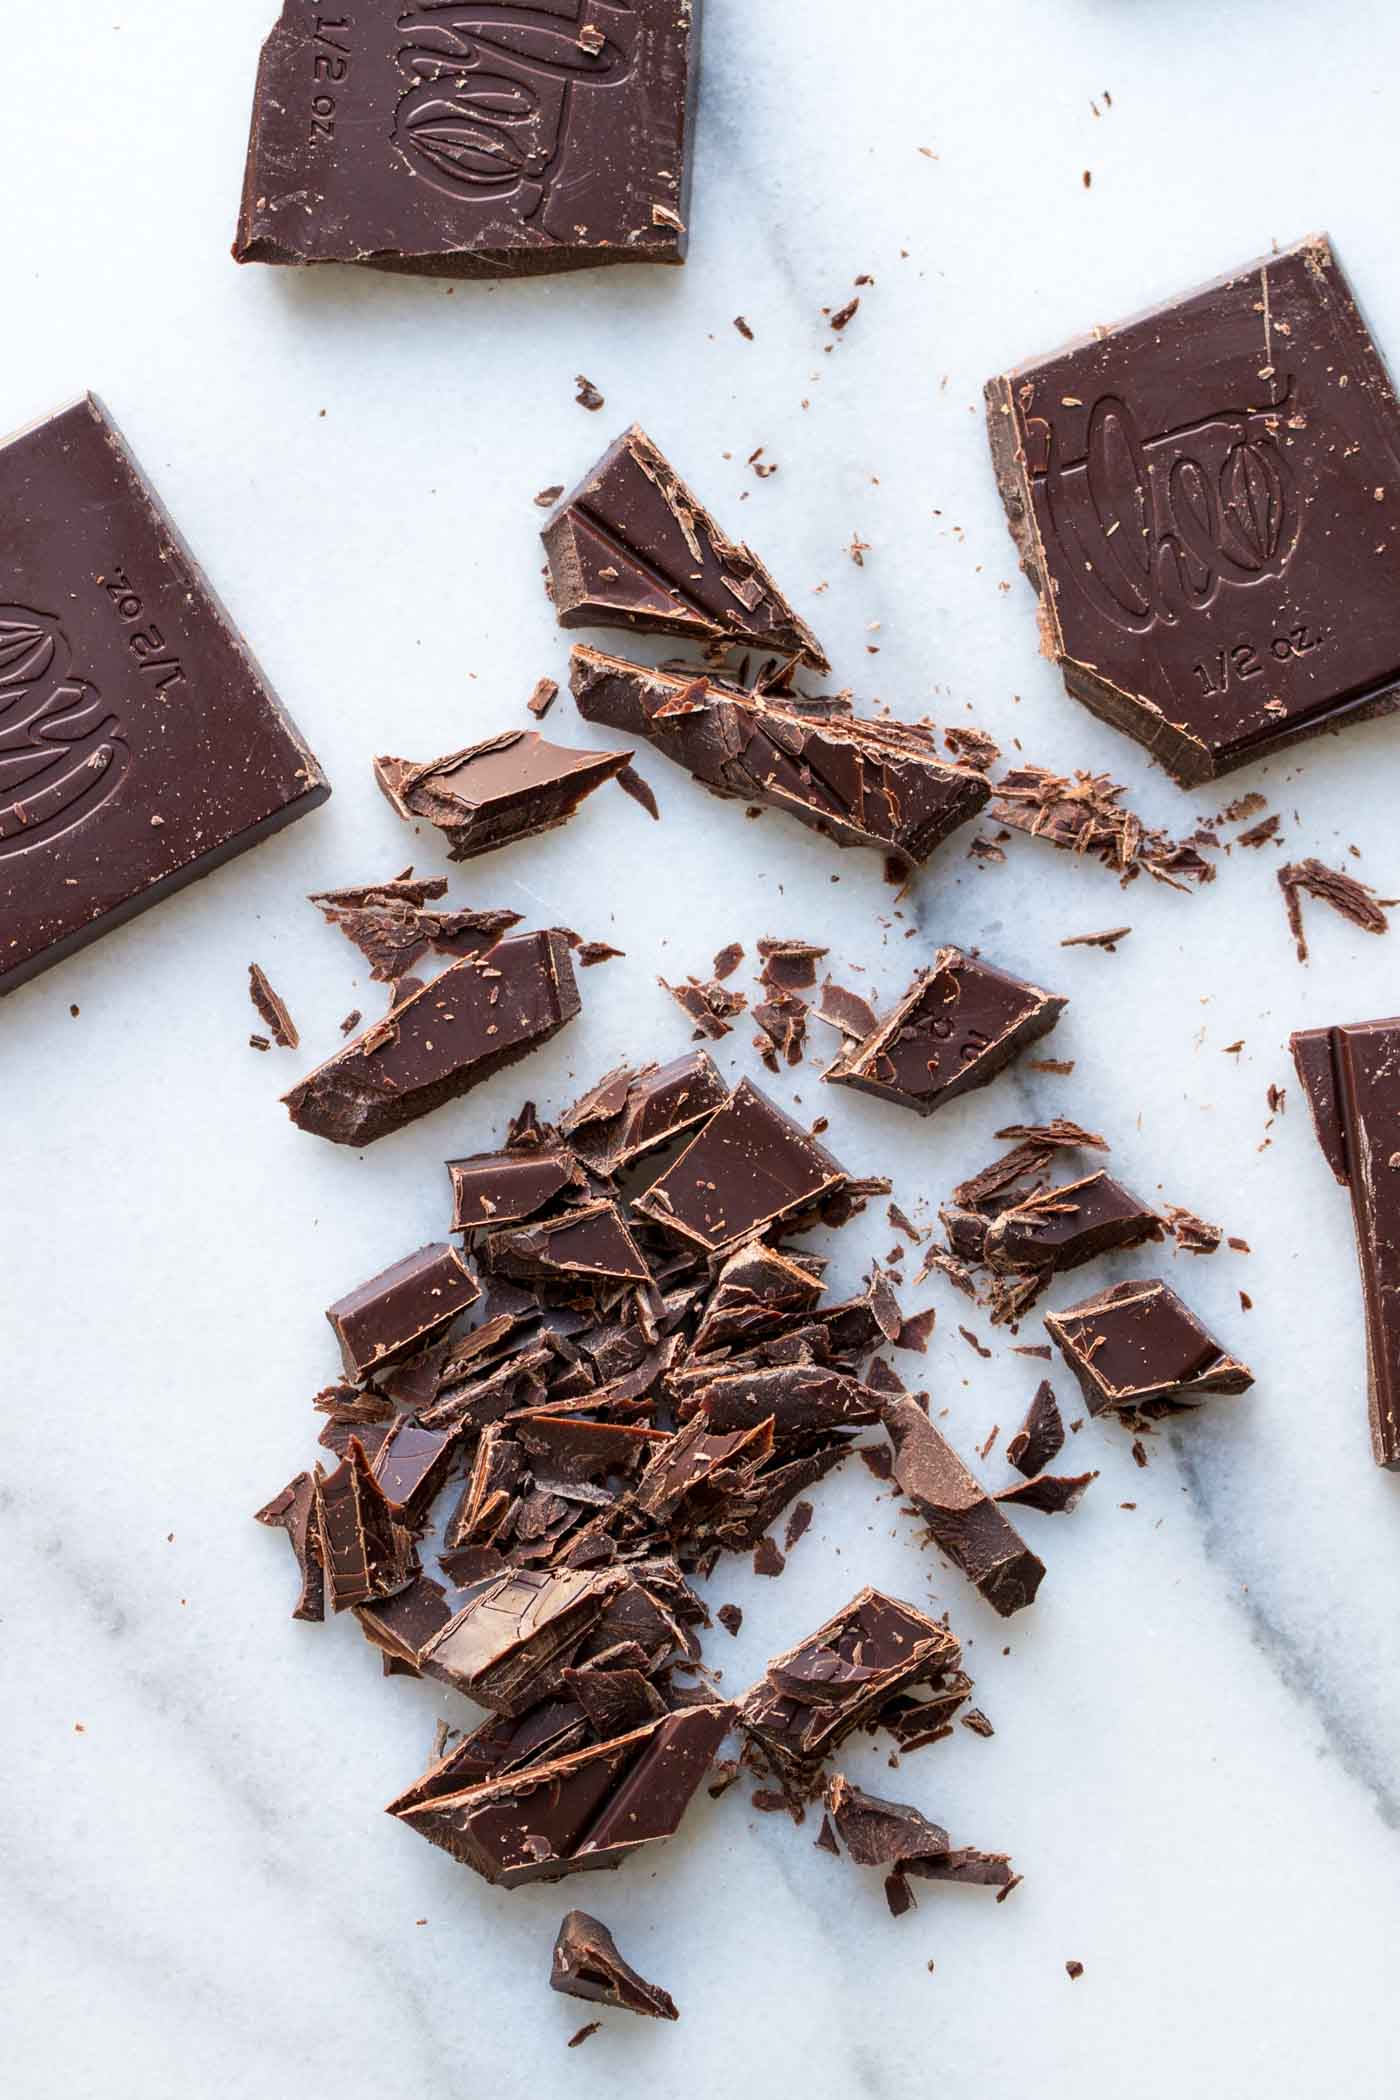 The best VEGAN baking chocolate -- 70% dark, organic, soy-free, gluten-free + fair-trade!